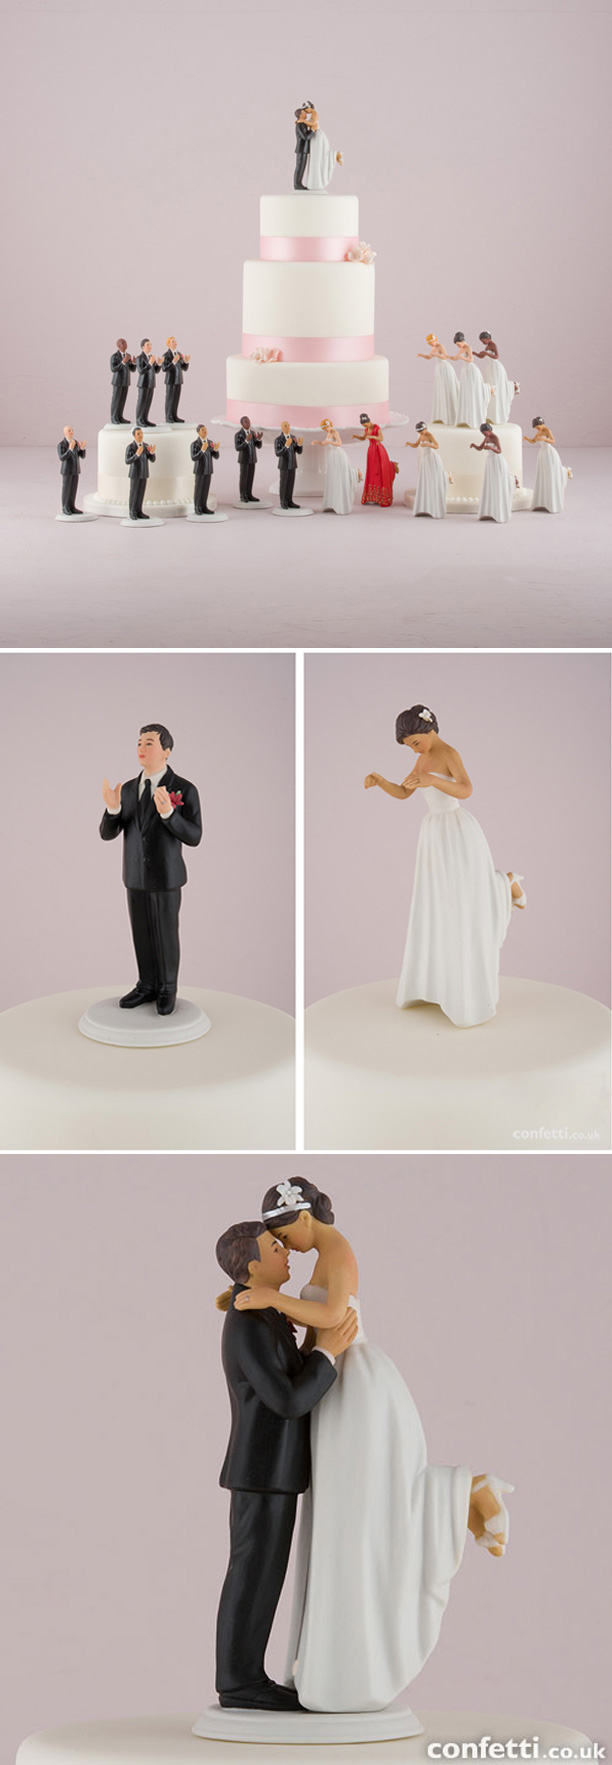 Interchangeable True Romance Bride And Groom Cake Toppers | Confetti.co.uk